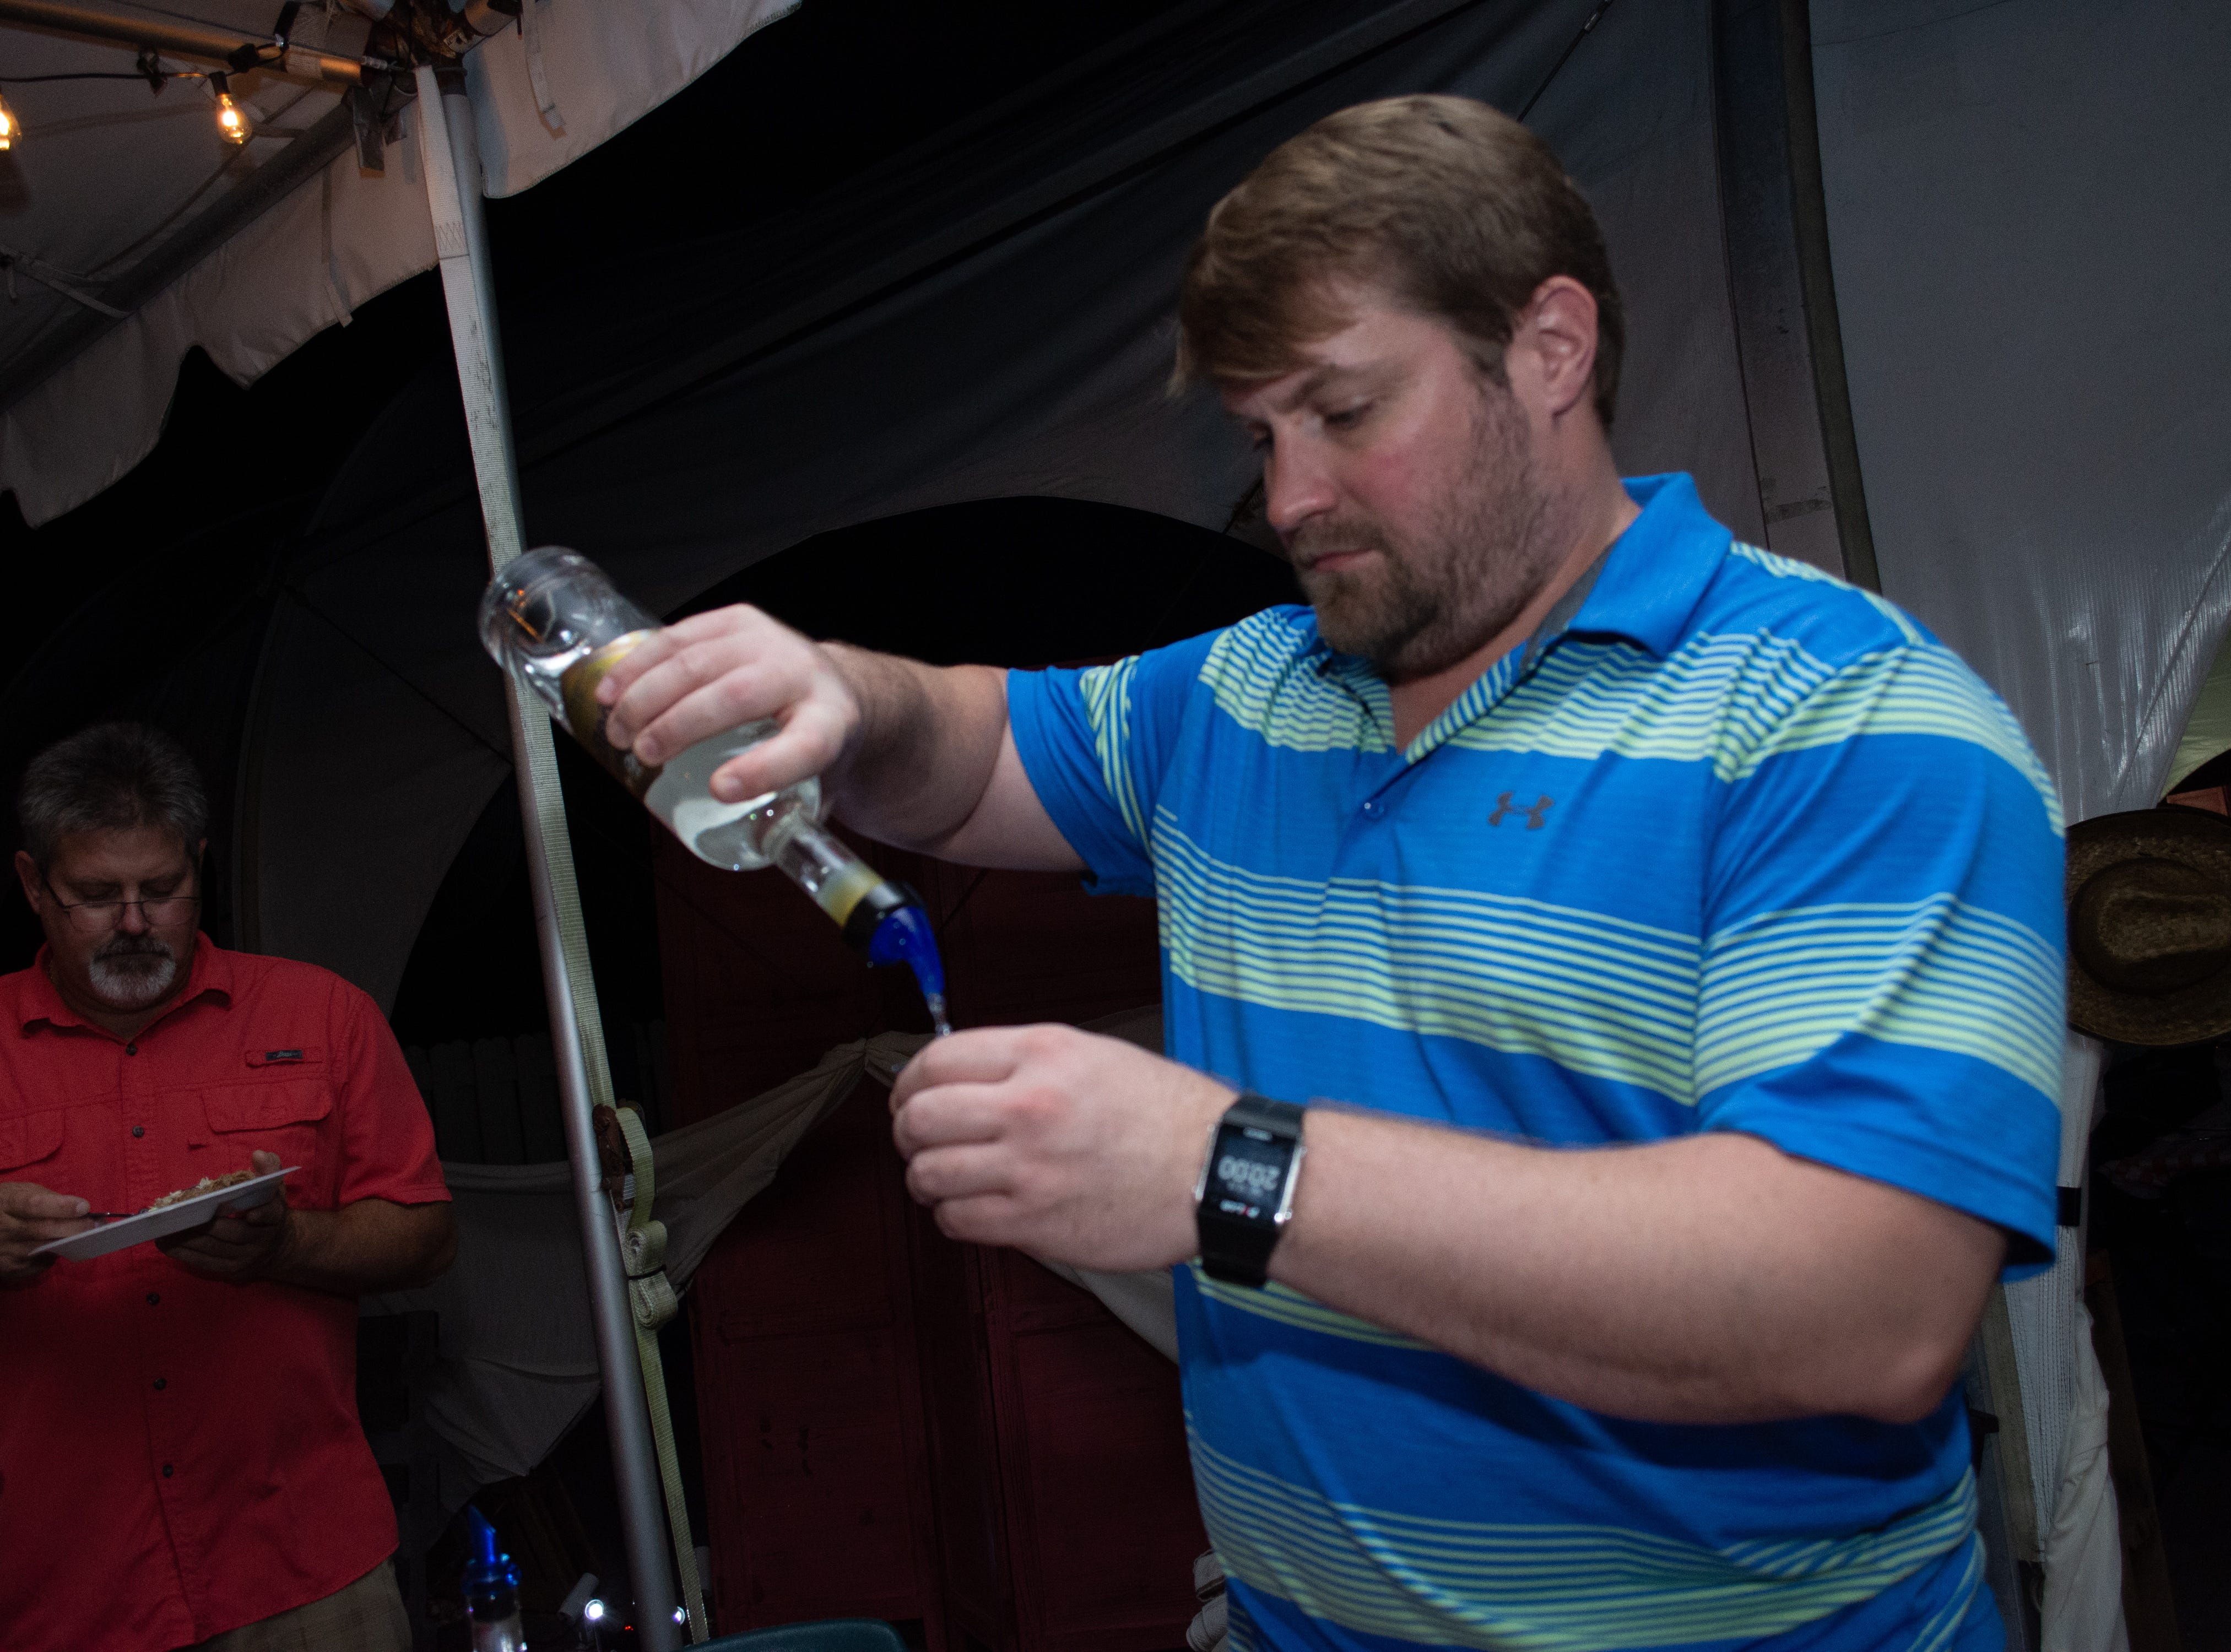 Andy Konzen with Honey Lane Distillery pours a shot. Arron Lampkin/For FLORIDA TODAY